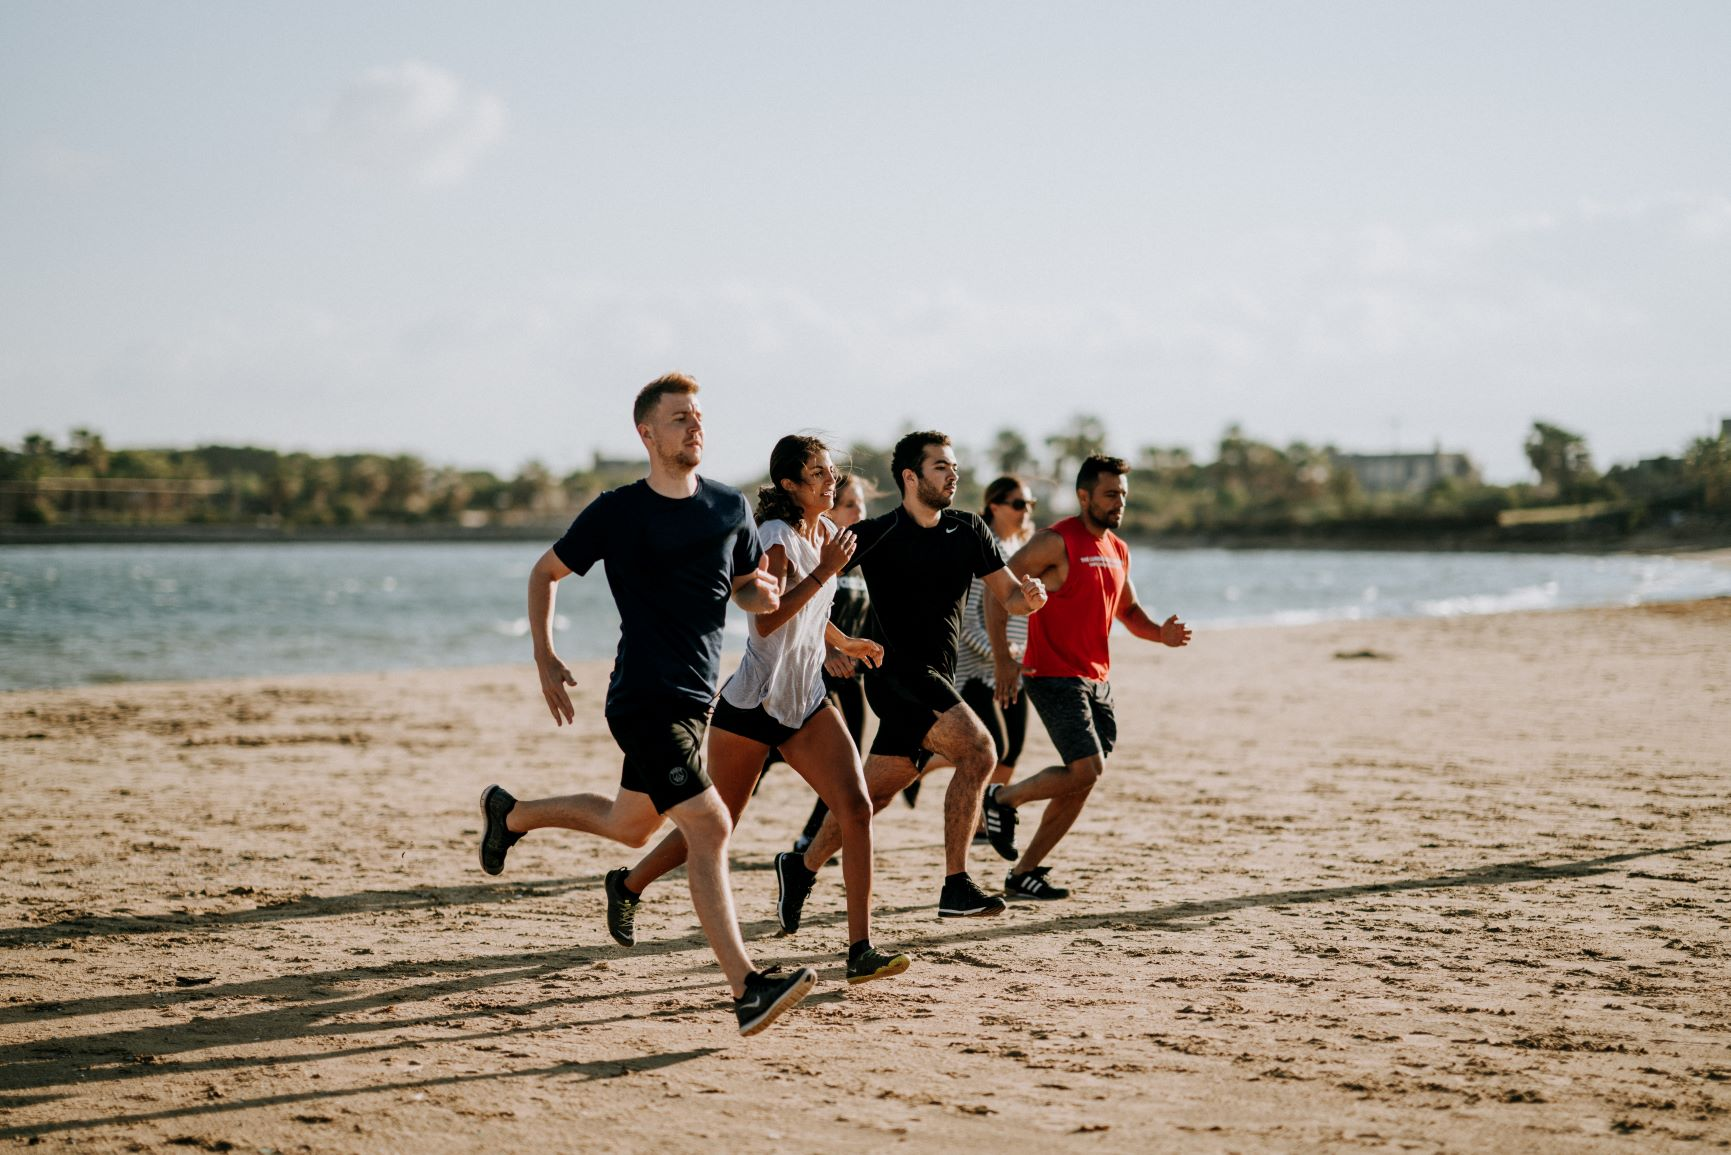 25-50 active lifestyle enthusiasts